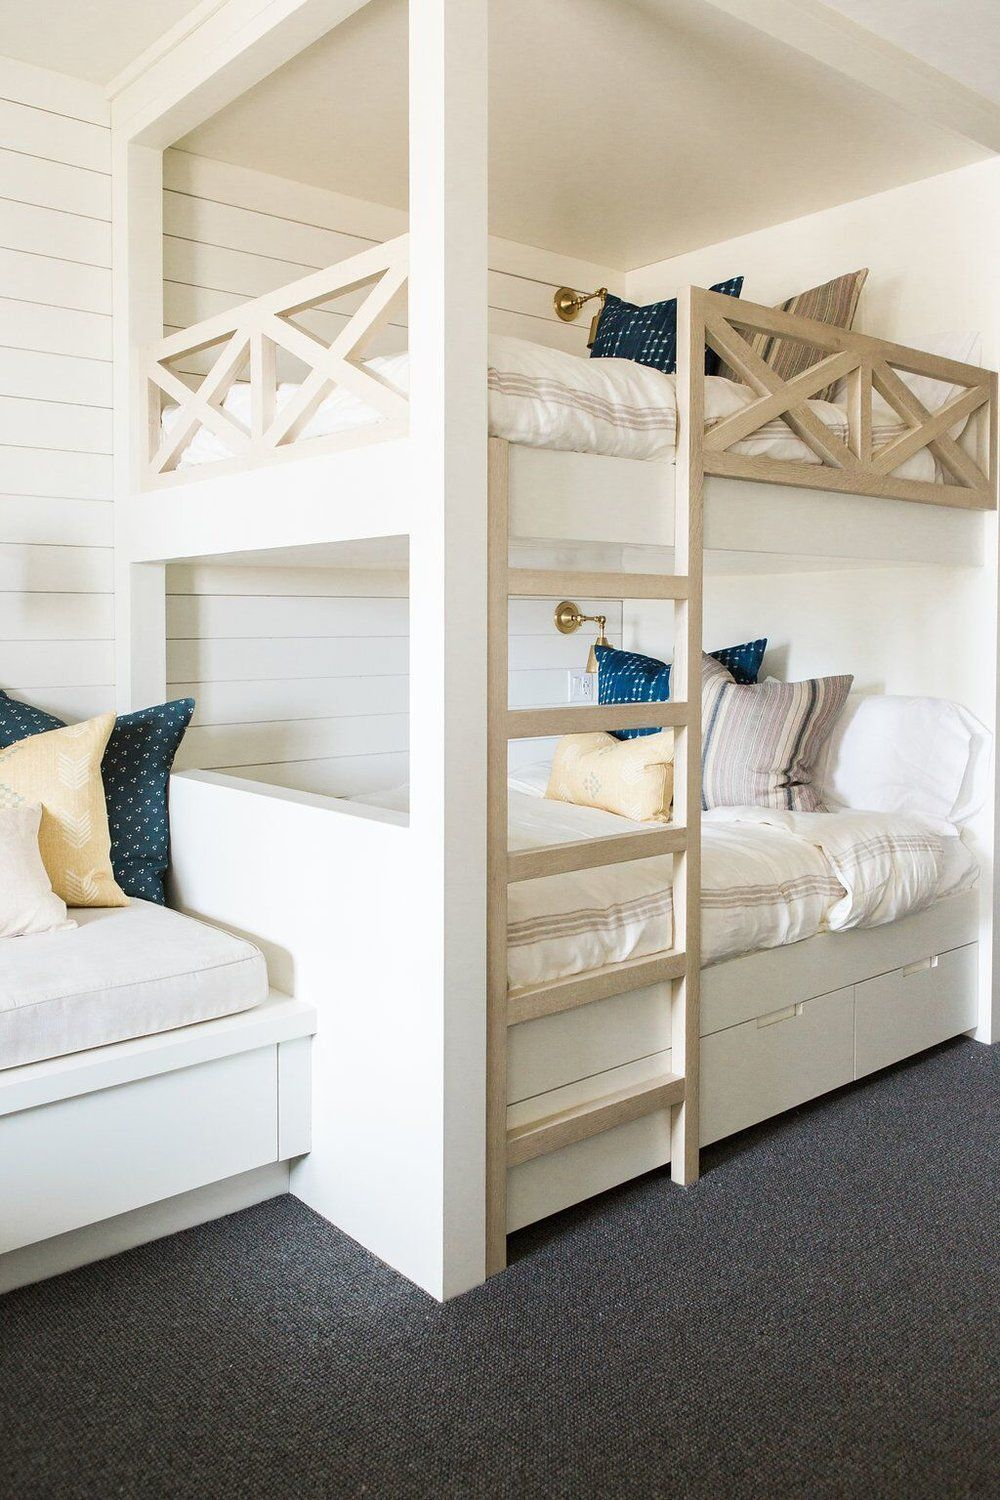 56 unique bunk bed design ideas for your kids bunk bed on wonderful ideas of bunk beds for your kids bedroom id=16132